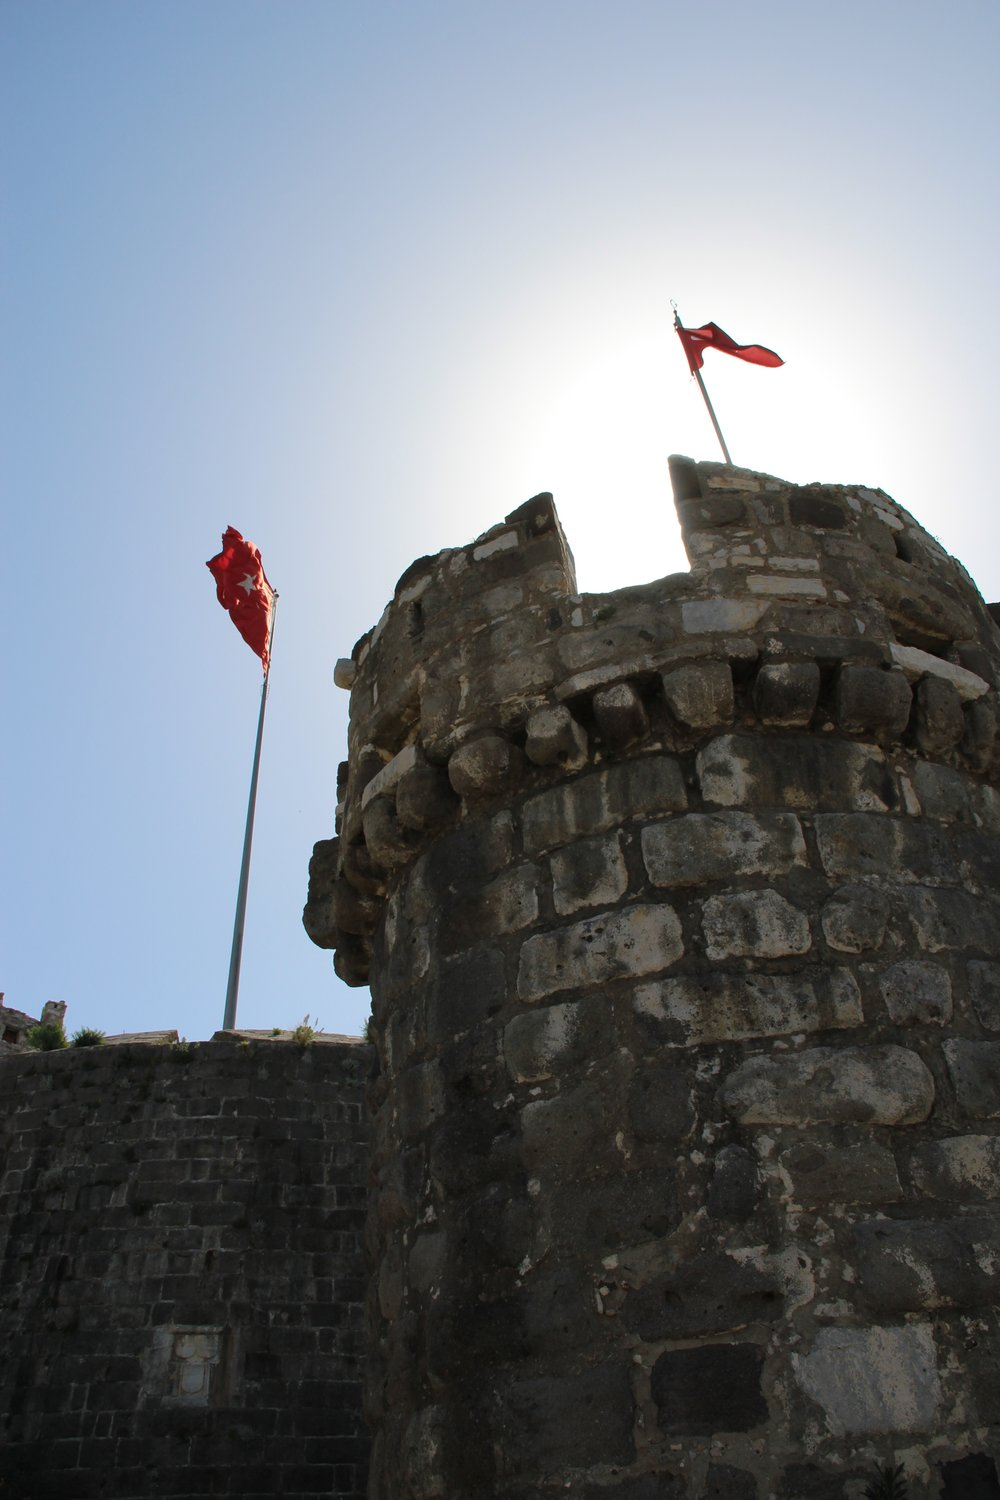 The knights of St John's castle in Bodrum - build in 1400 to resist the Ottomans